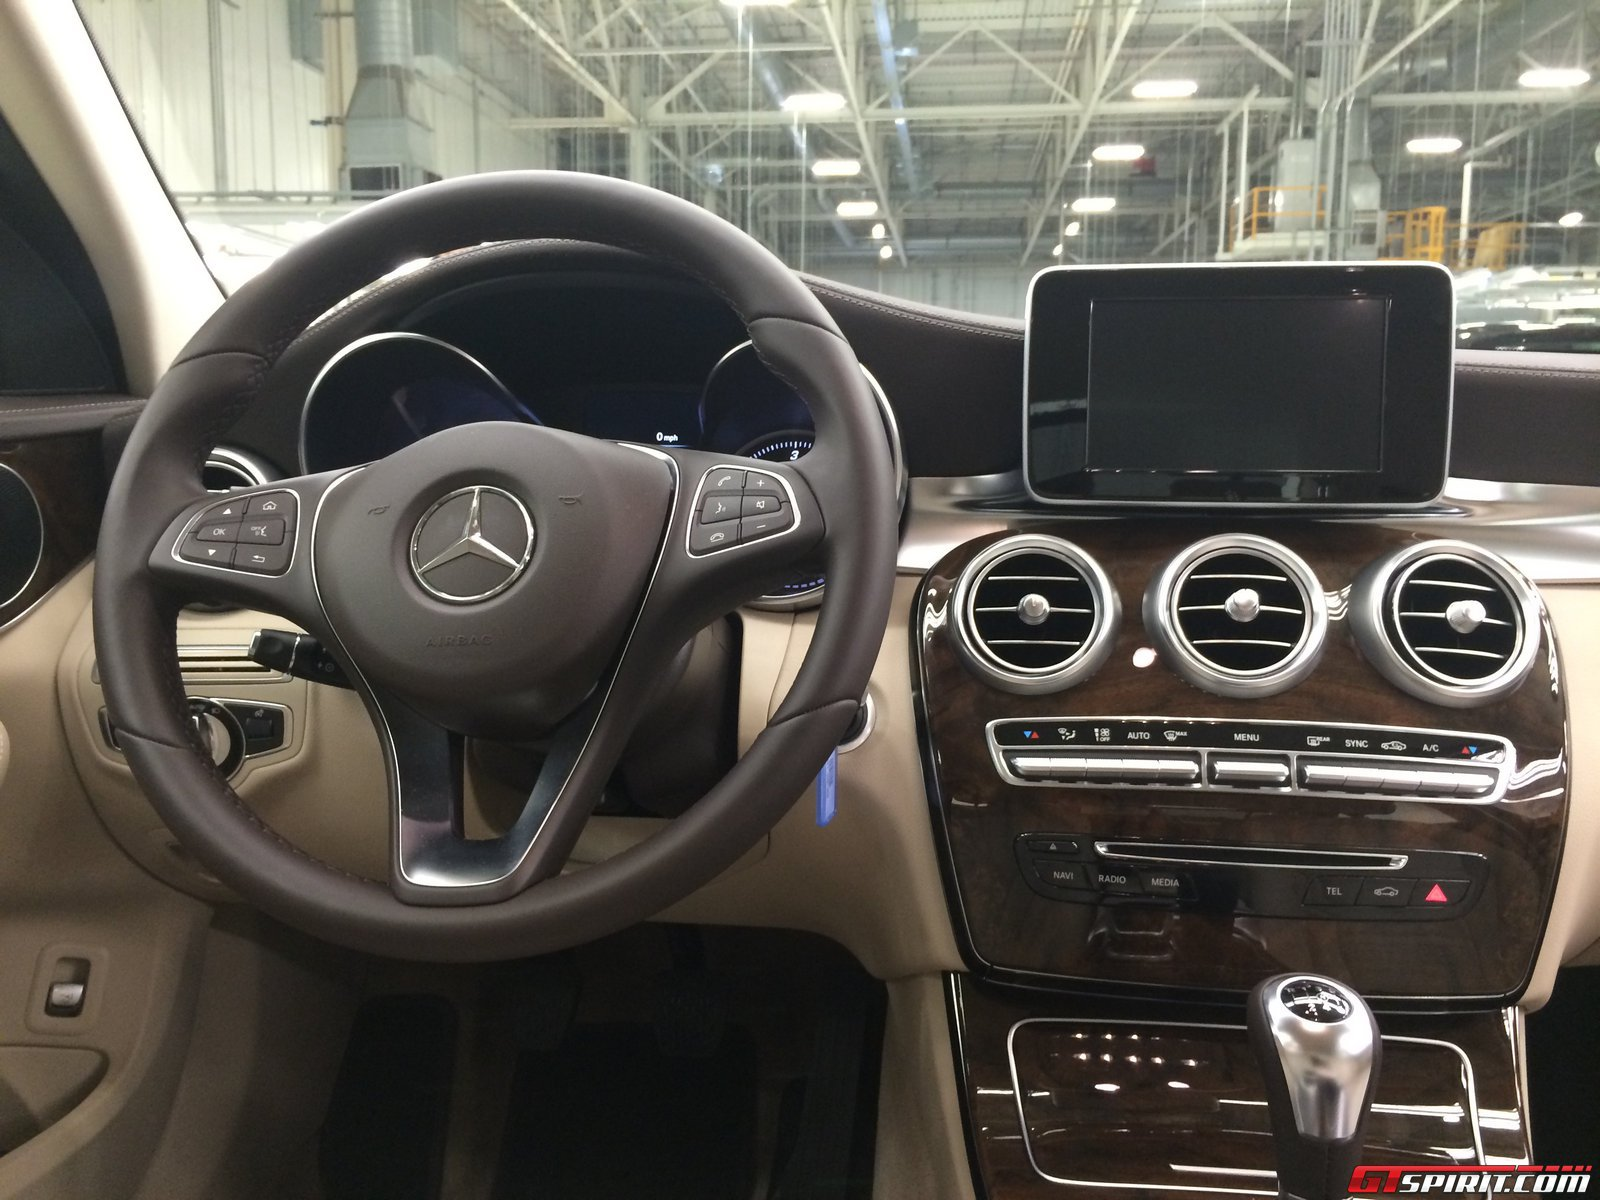 2015 c class interior pictures to pin on pinterest pinsdaddy for Mercedes benz c class 2015 interior